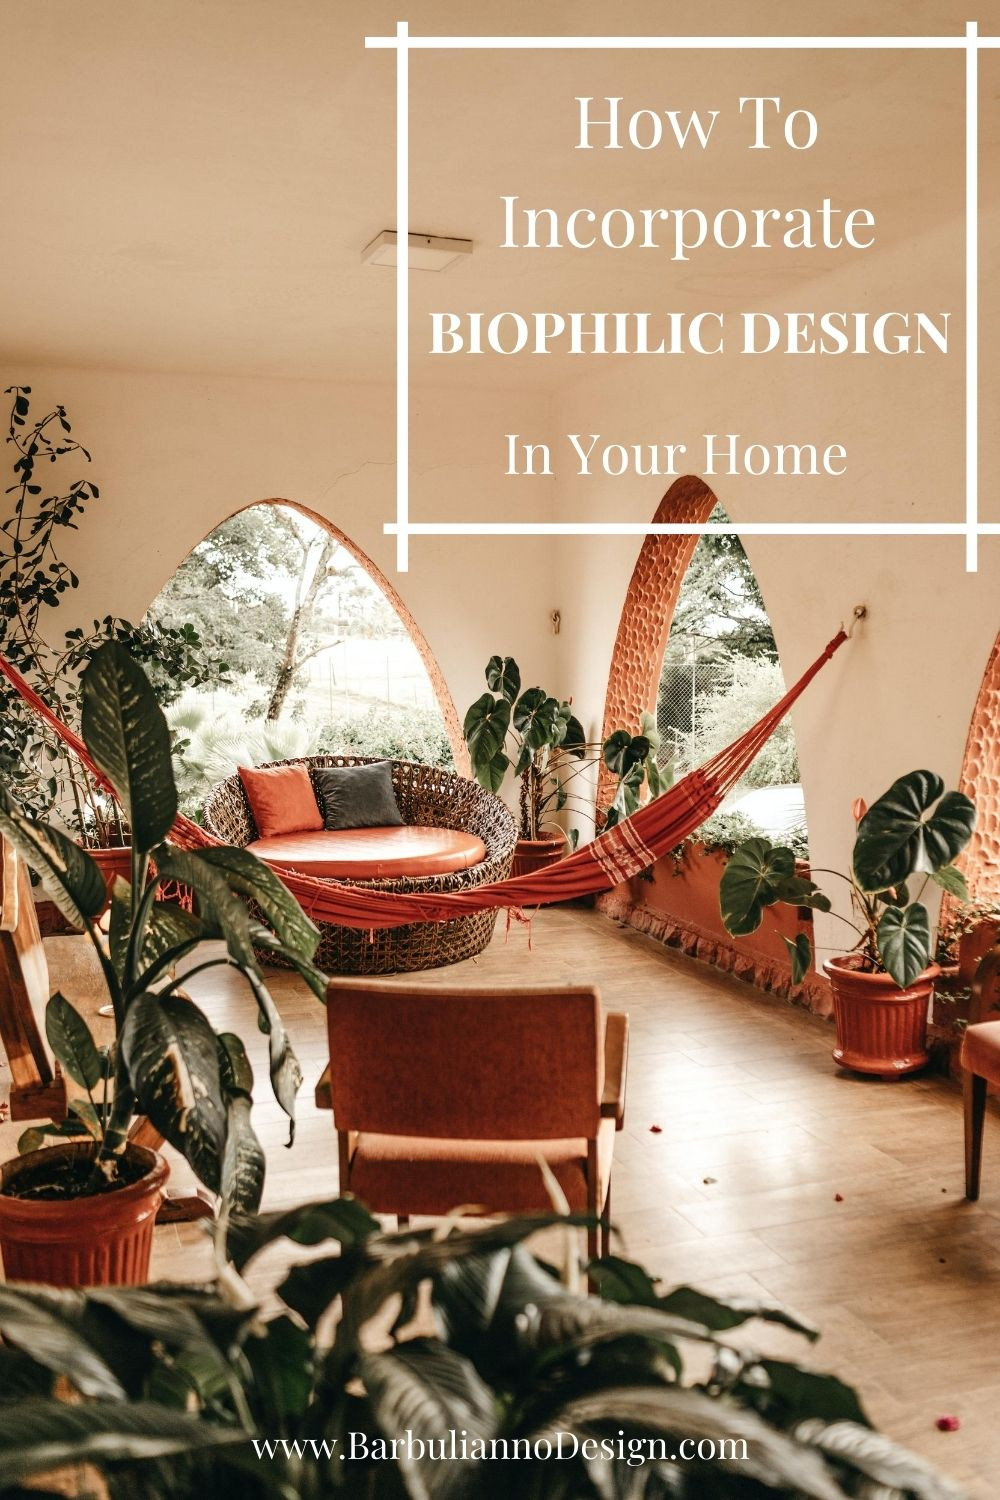 What is Biophilic Design and How to Incorporate in Your Home.